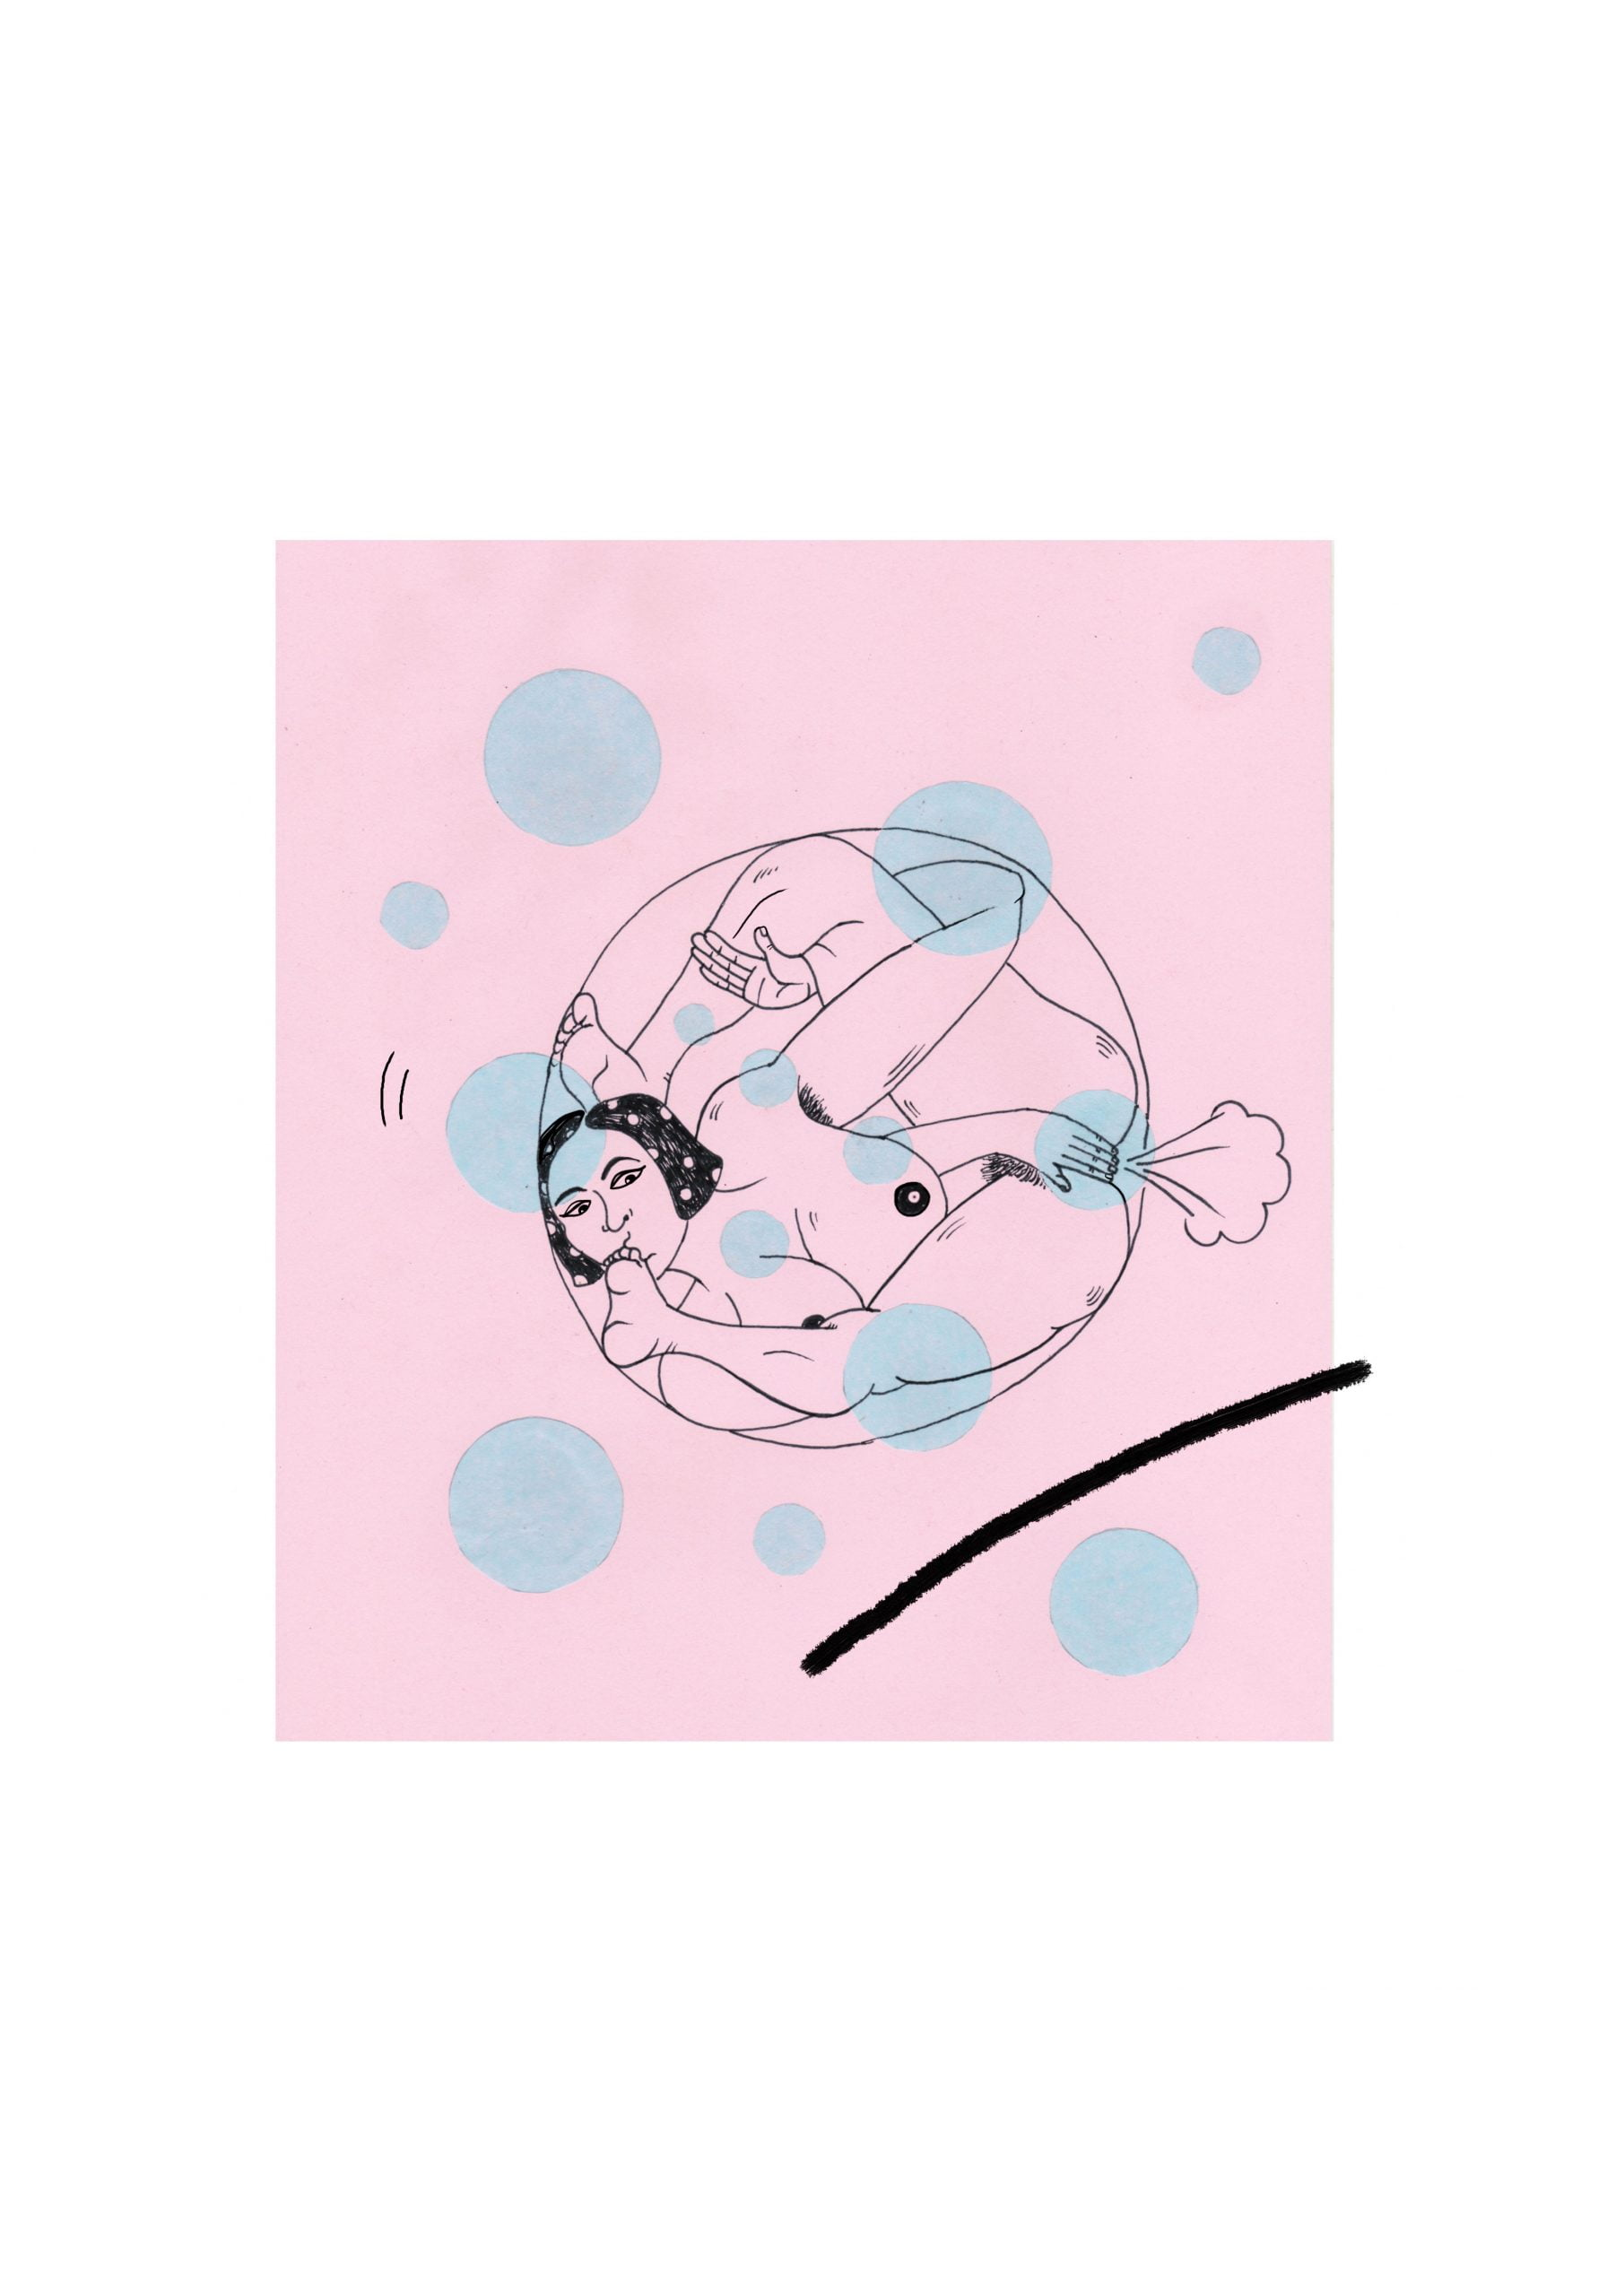 A portrait drawing in a pink square with multiple blue dots of a figure contorted in a bubble. They are naked and cover their genitals with their hand as a cloud of gas exits their body. A single black line is in the bottom right hand corner and a white background frames the drawing.